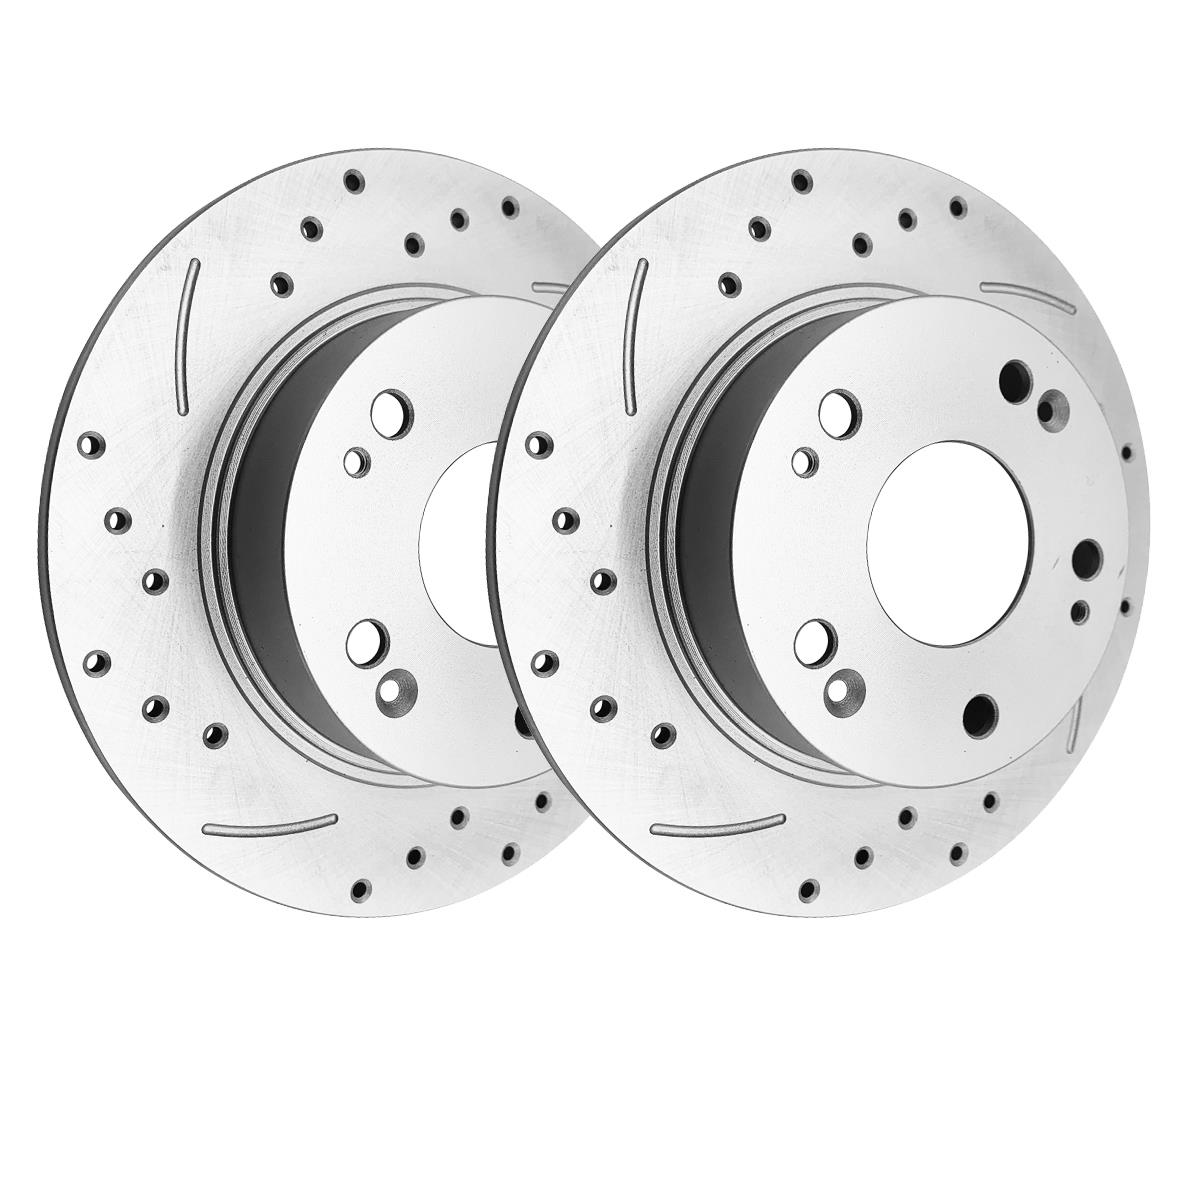 Rear Brake Rotors For 03 04 Acura Tsx Honda Accord Coupe